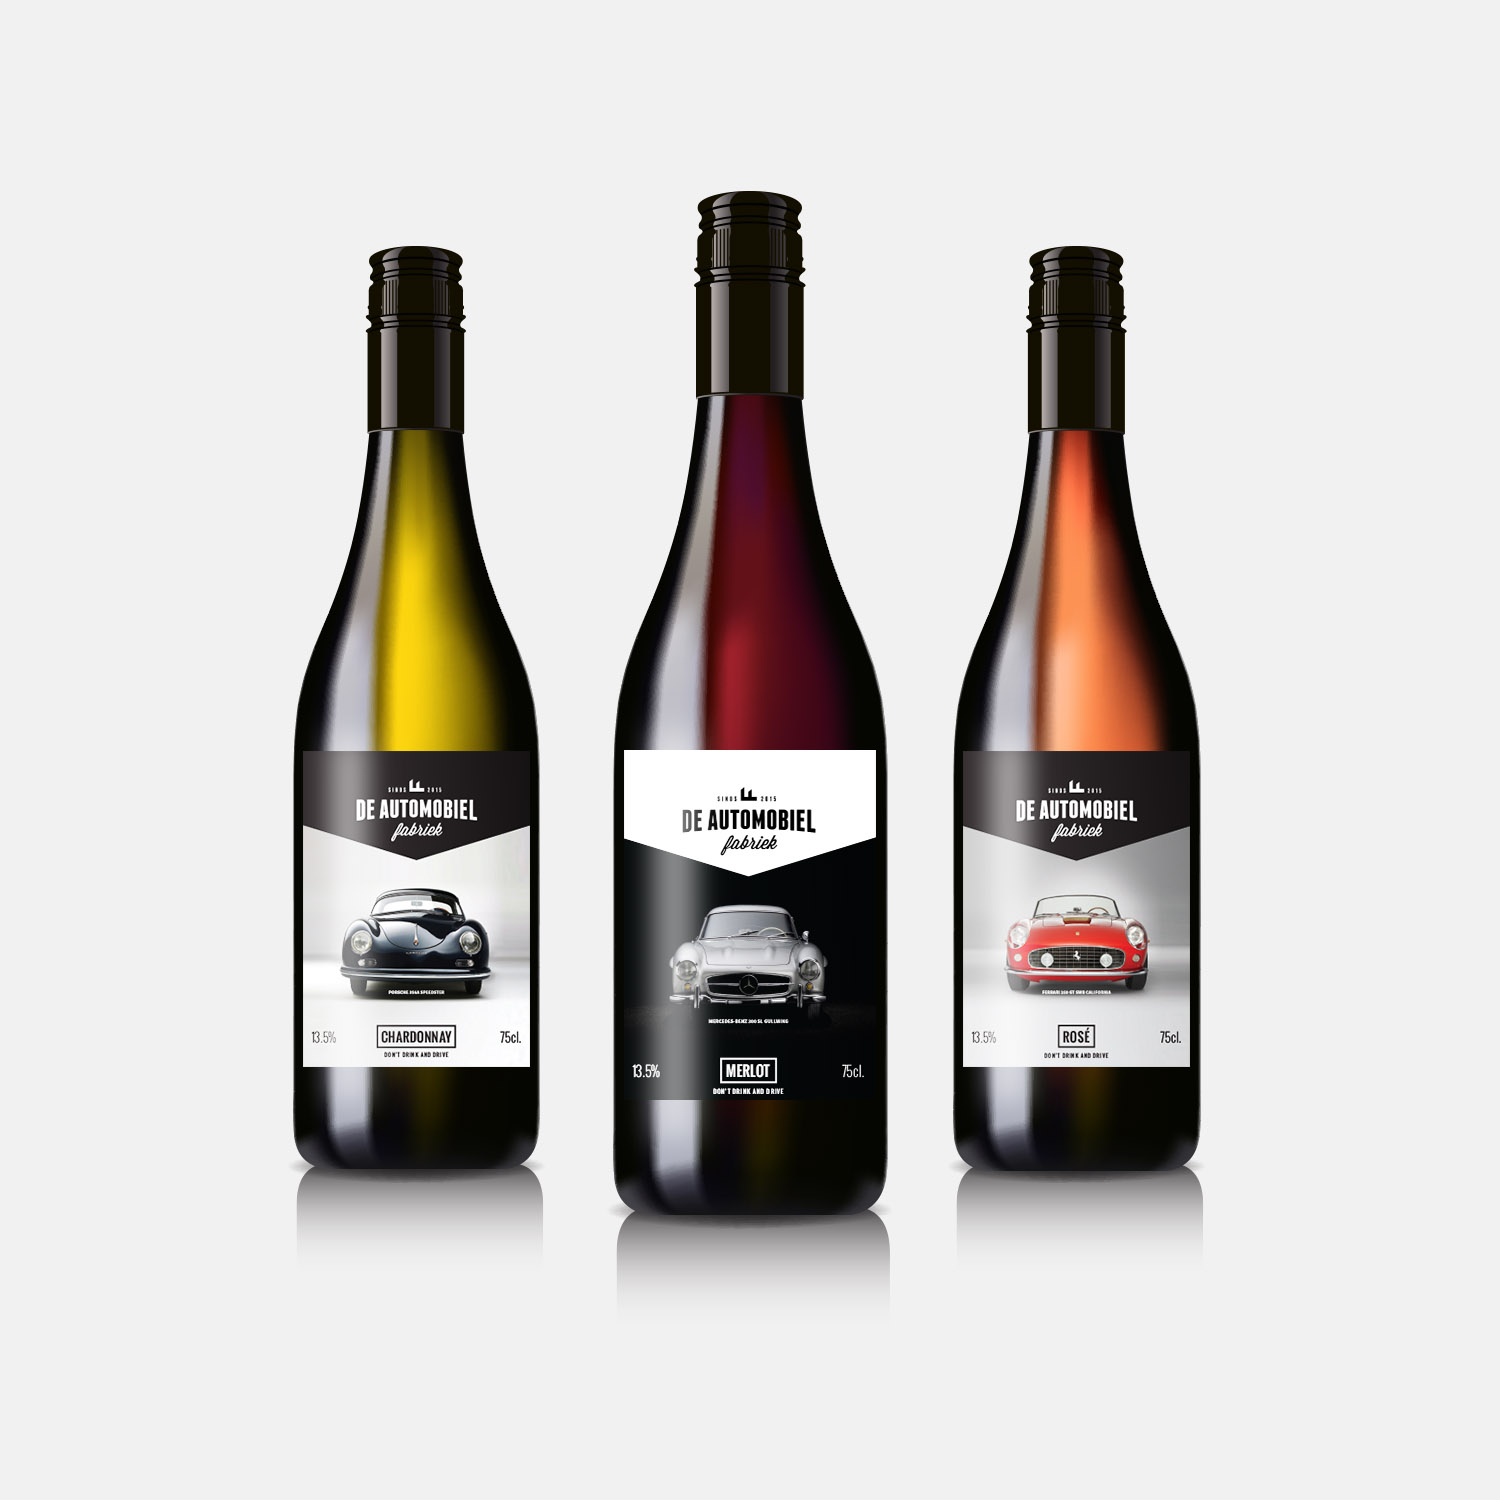 De Automobielfabriek wine labels